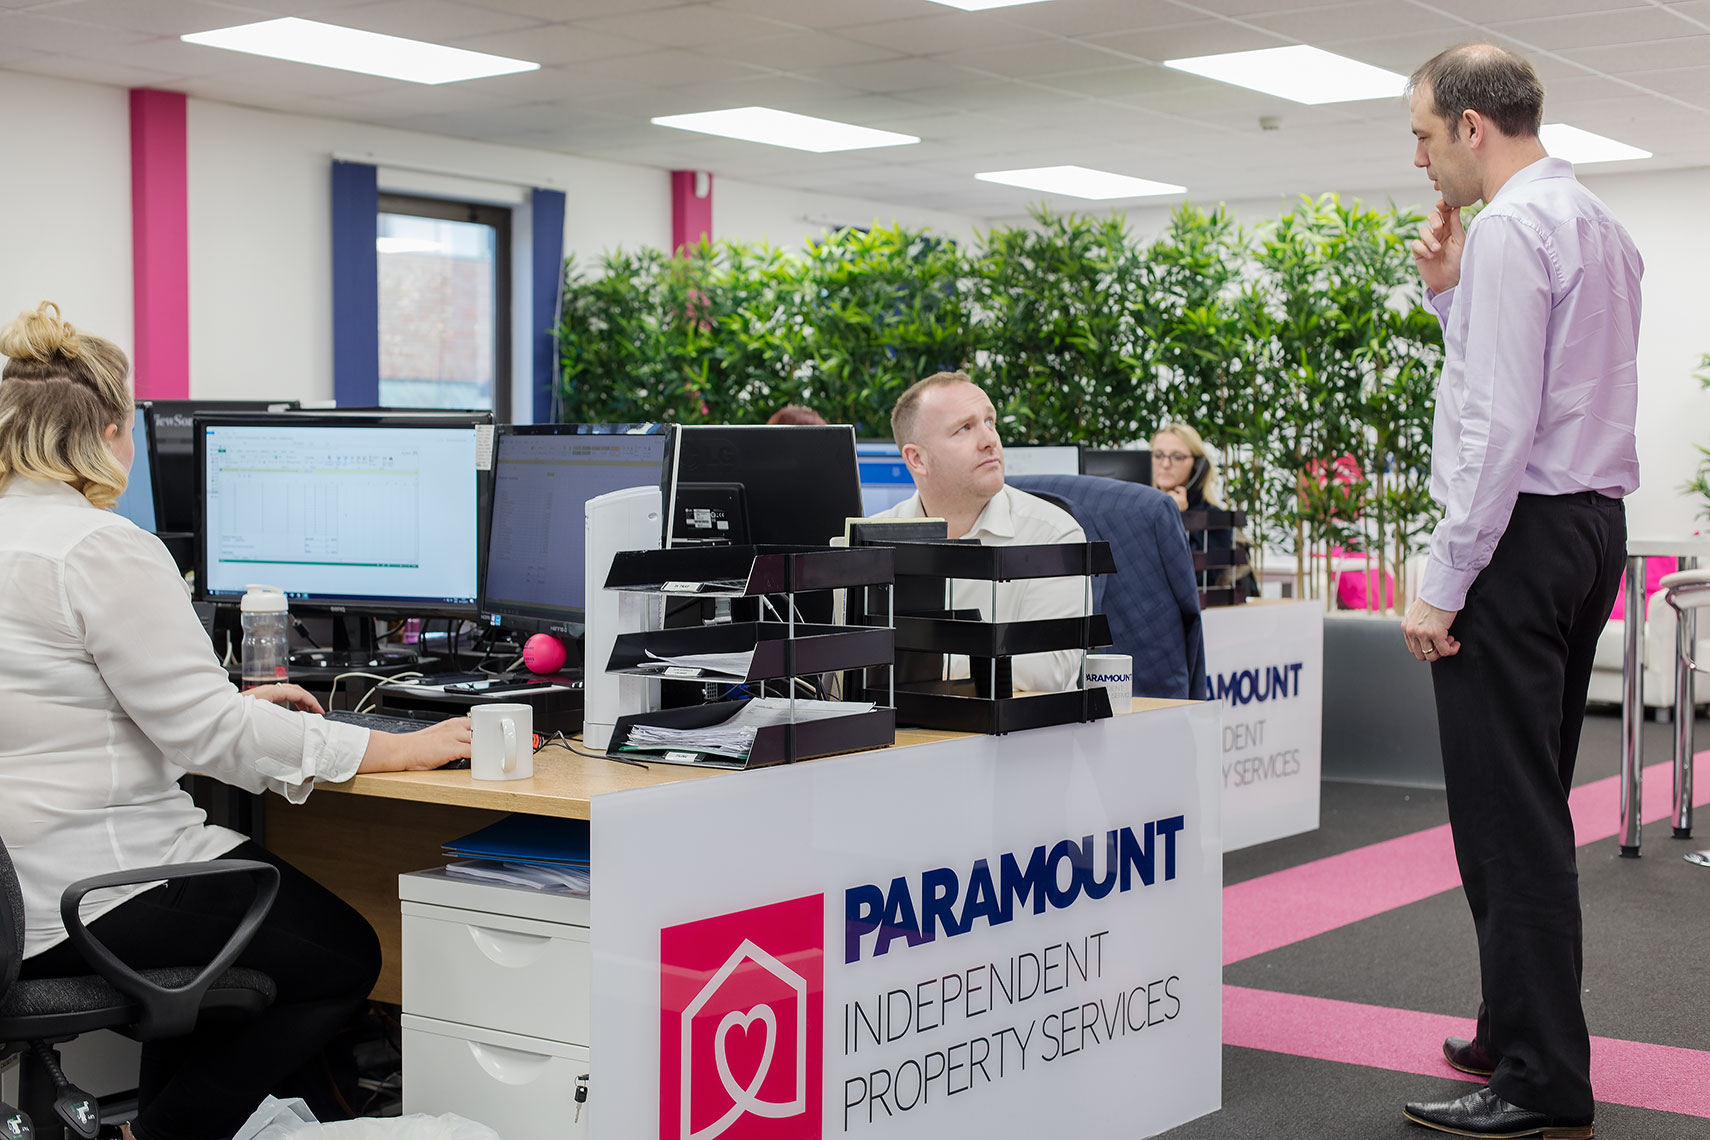 Paramount Property Services Stock Photography office view